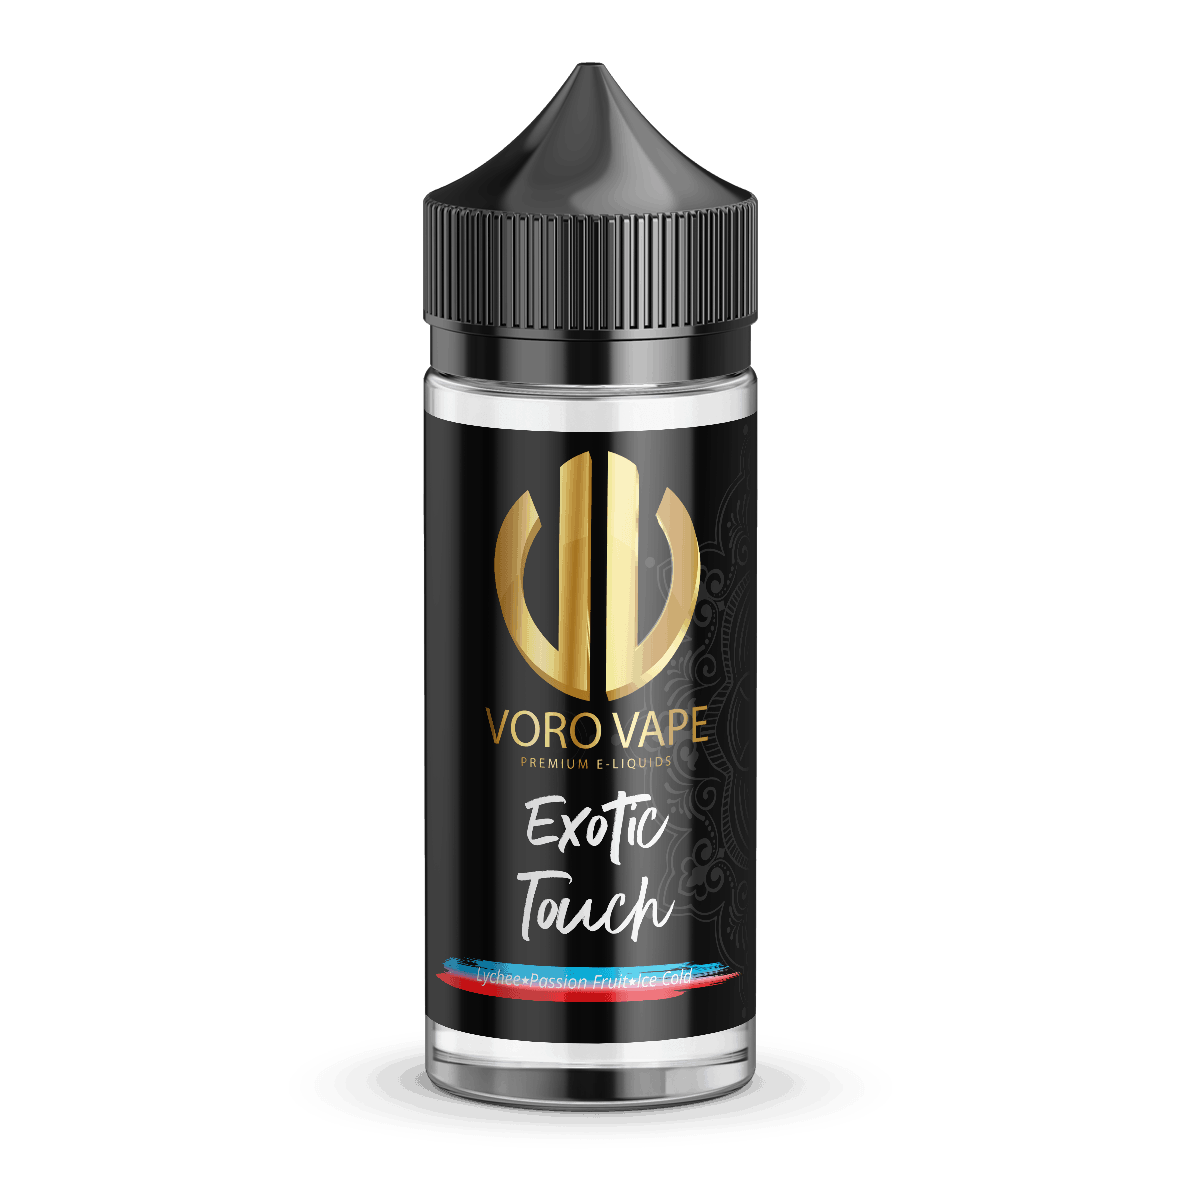 Exotic Touch E-Liquid Shortfill by Voro Vape